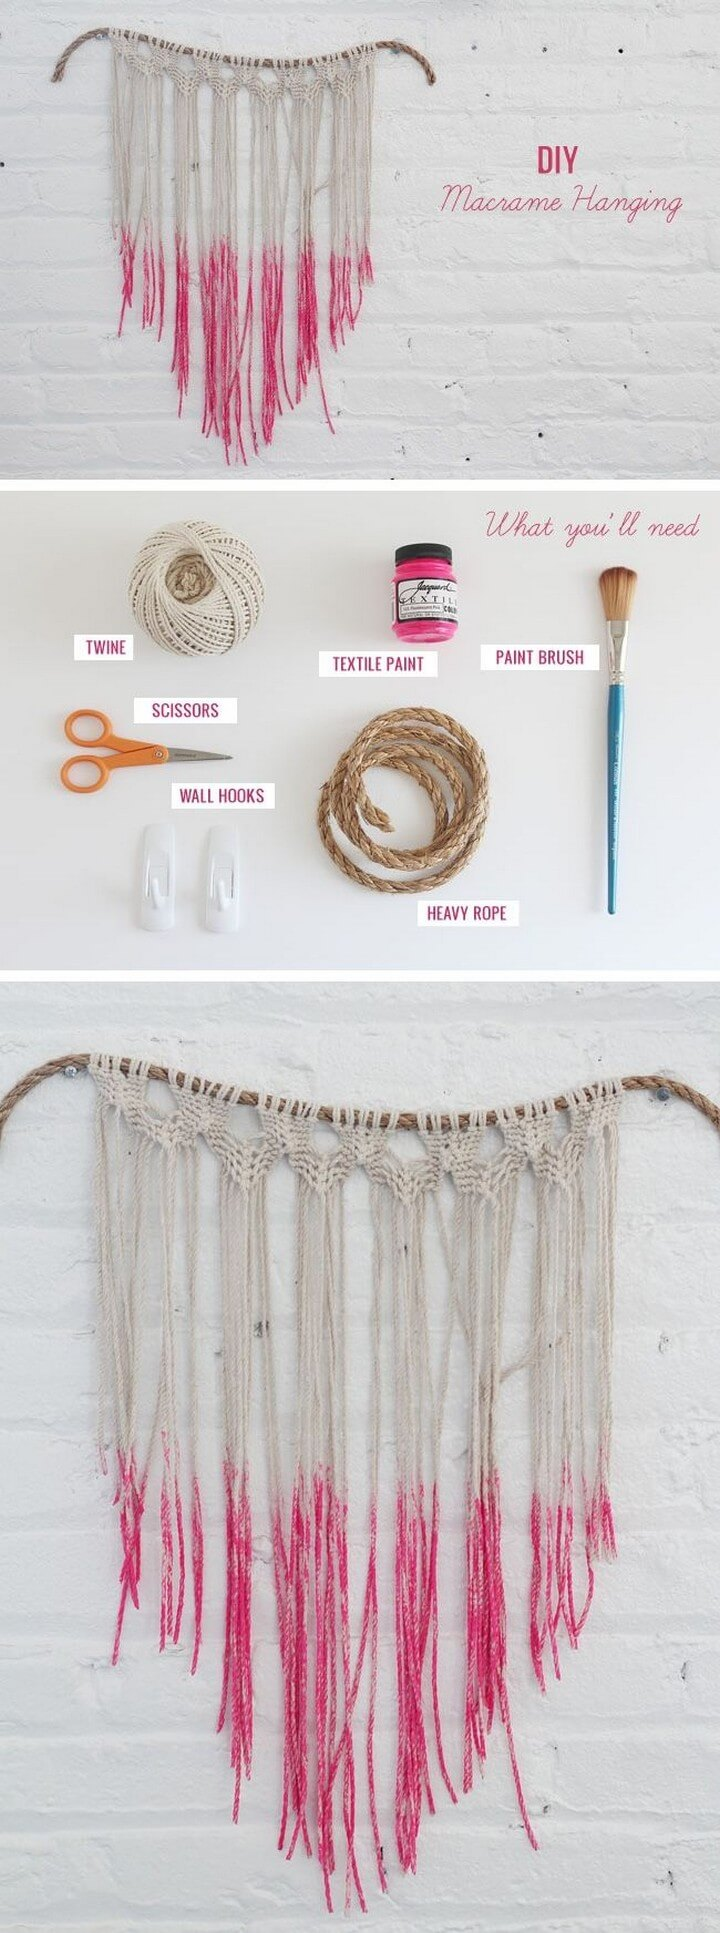 How To Make Hanging Room Decor Macrame, diy home decor crafts, diy home decor projects, diy home decor pinterest, modern diy home decor, diy home decor ideas living room, diy hacks home decor, quirky diy home decor, diy ideas for the home, diy hacks home decor, cheap diy projects for your home, diy ideas for the home, diy home projects for beginners, modern diy home decor, diy home decor pinterest, diy home decor ideas living room, diy decor ideas for bedroom, cheap diy projects for your home, diy home projects for beginners, diy hacks home decor, diy ideas for the home, diy home decor pinterest, modern diy home decor, diy home decor ideas living room, quirky diy home decor, diy home decor, diy home decor idea, ideas diy home decor, diy home decor craft, diy home decor project, diy home decor projects, crafts diy home decor, pinterest diy home decor, diy home decor dollar tree, easy diy home decor ideas, diy home decor ideas living room, rustic diy home decor, diy home decor ideas budget, diy home decor ideas on a budget, dollar tree diy home decor 2018, diy home decor craft ideas, diy home decor projects cheap, diy home decor christmas, top diy home decor blogs, budget diy home decor, diy home decor youtube, simple diy home decor, thrift store diy home decor, elegant diy home decor, diy home decor websites, pinterest diy home decor projects, inexpensive diy home decor, diy home decor painting, hobby lobby diy home decor, easy cheap diy home decor, diy home decor crafts pinterest, diy home decor tutorials, pinterest diy home decor ideas, michaels diy home decor, vintage diy home decor, best diy home decor youtube channels, spring diy home decor, diy home decor instagram, diy home decor wall hangings, diy home decor christmas gifts, diy home decor flower vase, diy home decor ideas for small homes, diy home decor wine bottles, low cost diy home decor, diy home decor mason jars, diy home decor books, diy home decor living room, diy home decor craft projects, diy home decor canvas art, unique diy home decor ideas, diy home decor magazine, 33 cool diy home decor ideas, affordable diy home decor, quirky diy home decor, step by step diy home decor, diy home decor from recycled materials, diy home decor for apartments, simple diy home decor ideas, disney diy home decor, valentine's day diy home decor, diy home decor ideas kitchen, diy home decor recycled, simple diy home decor projects, diy home decor bathroom, diy home decor ideas india, easy diy home decor pinterest, how to diy home decor, arts and crafts diy home decor, diy home decor with cardboard, diy home decor ideas bathroom, diy home decor projects on a budget, 21 magical and easy diy home decor ideas, diy home decor wall art, diy home decor with household items, creative diy home decor, easy diy home decor crafts, dollar tree diy home decor ideas, beautiful diy home decor, buzzfeed diy home decor, diy home decor ideas for diwali, diy home decor malaysia, inexpensive diy home decor ideas, diy home decor ideas with pallets, indian diy home decor blog, diy home decor with glass bottles, diy home decor crafts blog, diy home decor ideas for christmas, diy home decor ideas from waste, diy home decor ideas videos, diy home decor for diwali, diy home decor online, 19 awesome diy home decor, diy home decor for small spaces, diy home decor accessories, diy home decor with hot glue gun, diy home decor paper crafts, diy home decor indian style, diy home decor halloween, creative diy home decor ideas, diy home decor kitchen, pinterest diy home decor on a budget, diy home decor organization, diy home decor ideas 2018, pinterest diy home decor gifts, diy home decor subscription box, diy home decor outdoor, diy home decor south africa, diy home decor 2016, diy home decor out of waste, diy home decor on the cheap, diy home decor ideas youtube, diy home decor using household items, diy home decor maybaby, diy home decor craft kit, diy home decor and organization, diy home decor using cans, diy home decor on a budget pinterest, diy home decor bloggers, diy home decor using nature, diy home decor small apartment, diy home decor using branches, diy home decor minimalist, diy home decor tv shows, instagram diy home decor, diytomake.com